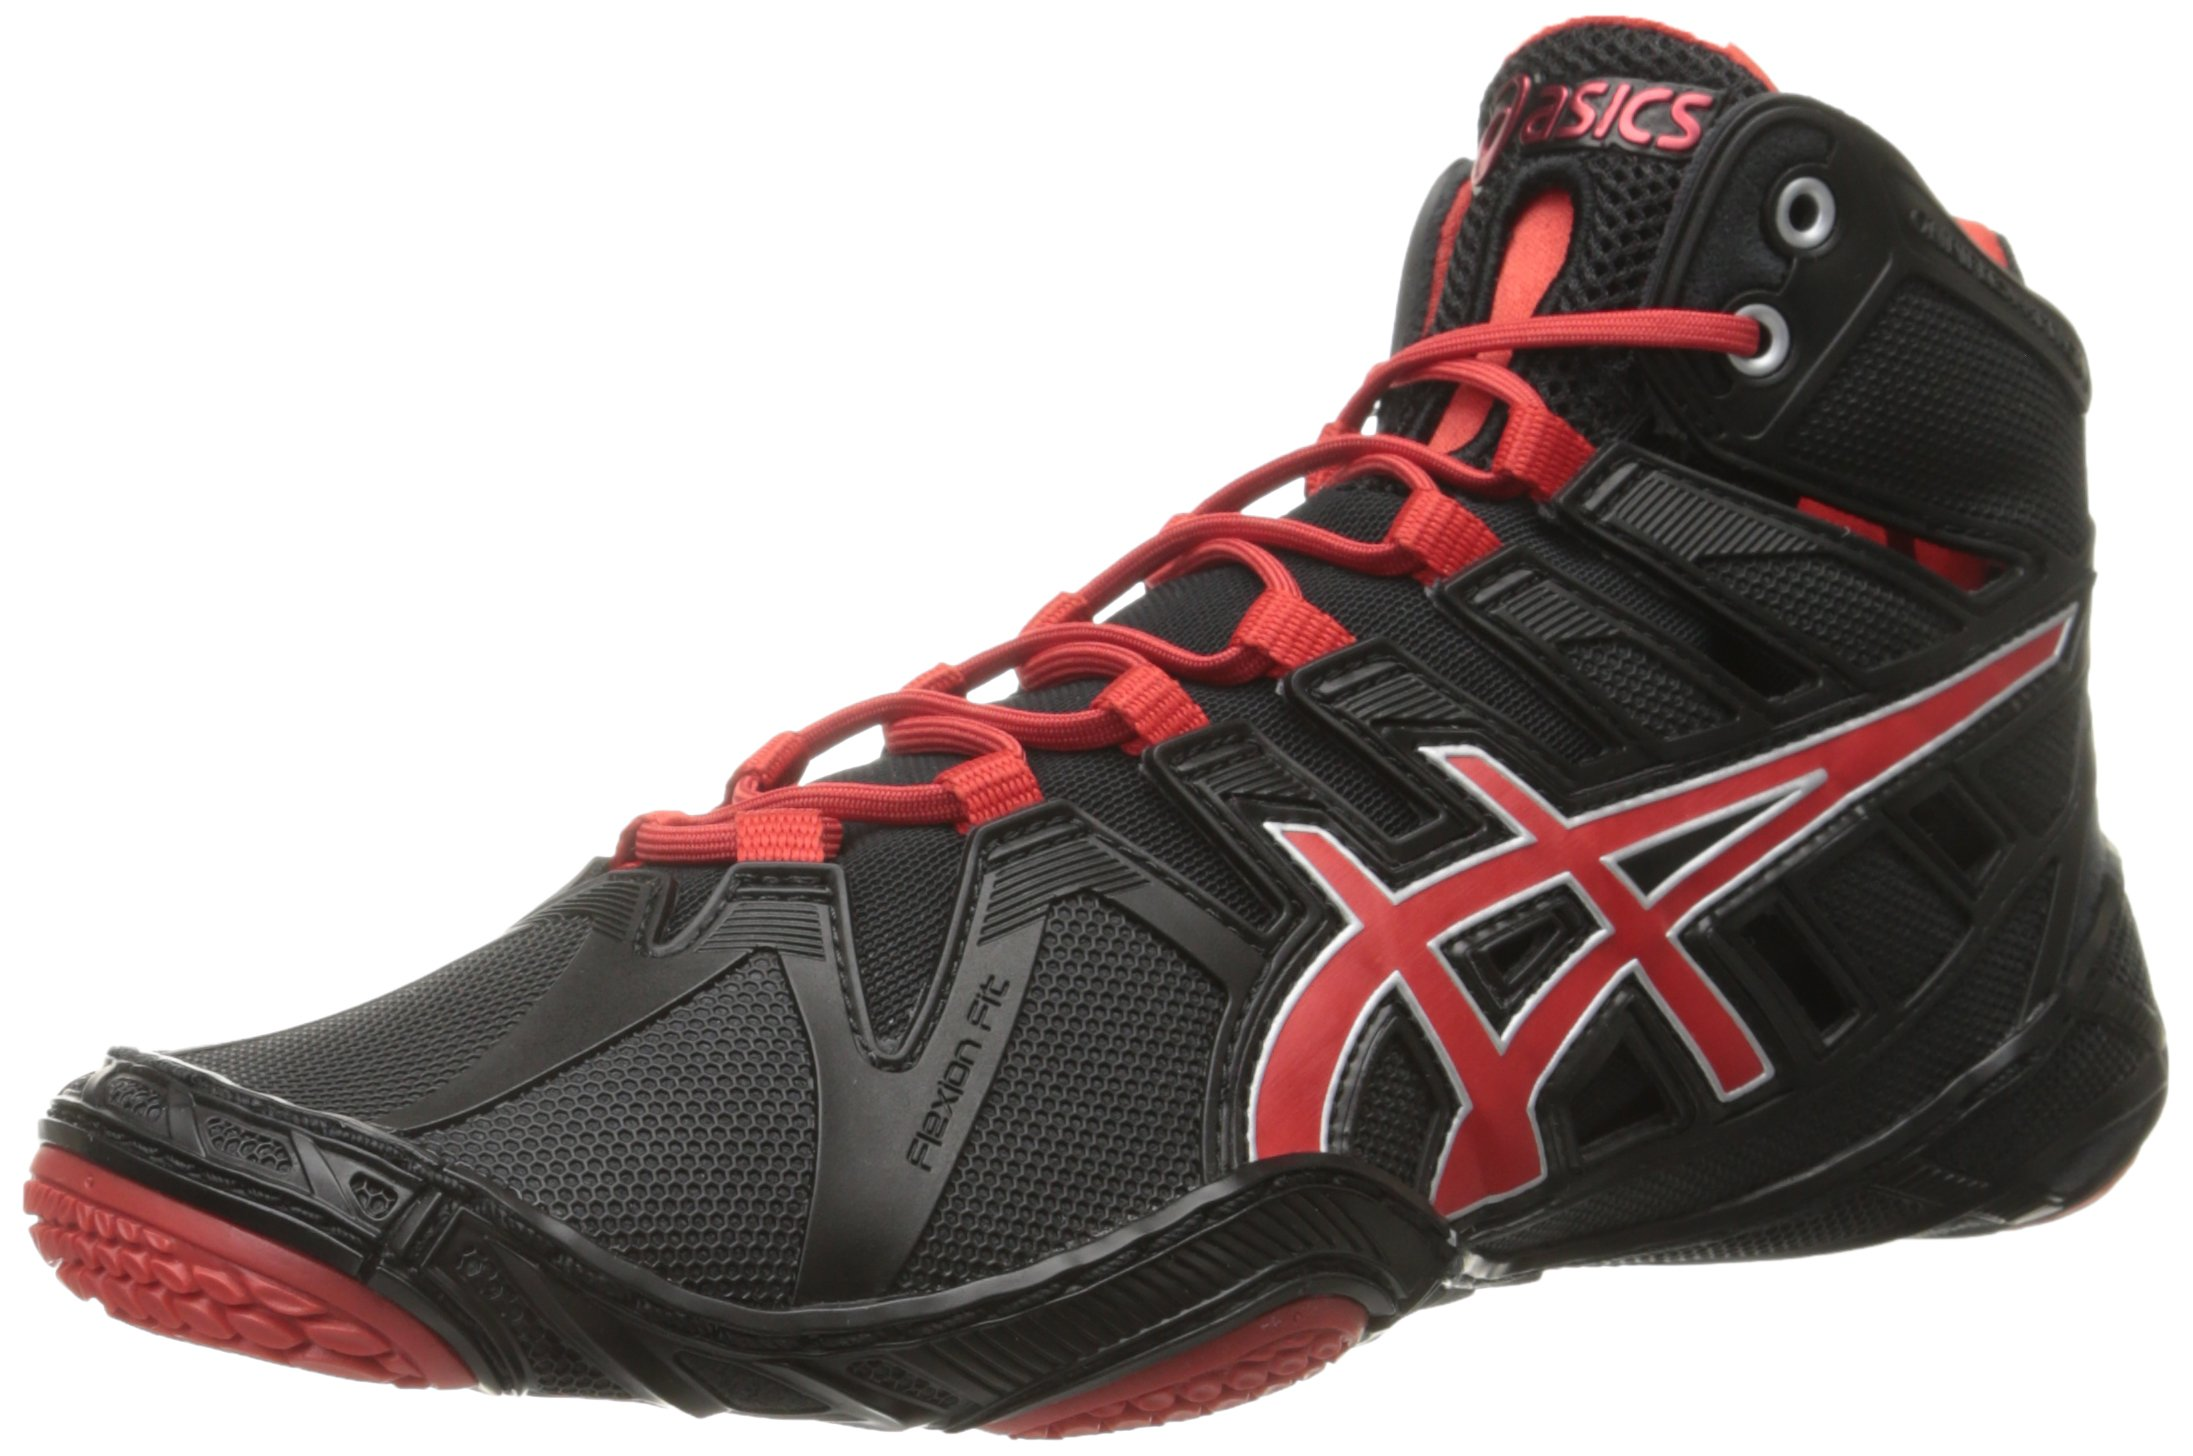 ASICS Men's Omniflex-Attack 2 Wrestling Shoe, Black/Pepper Red/Silver, 11 M US